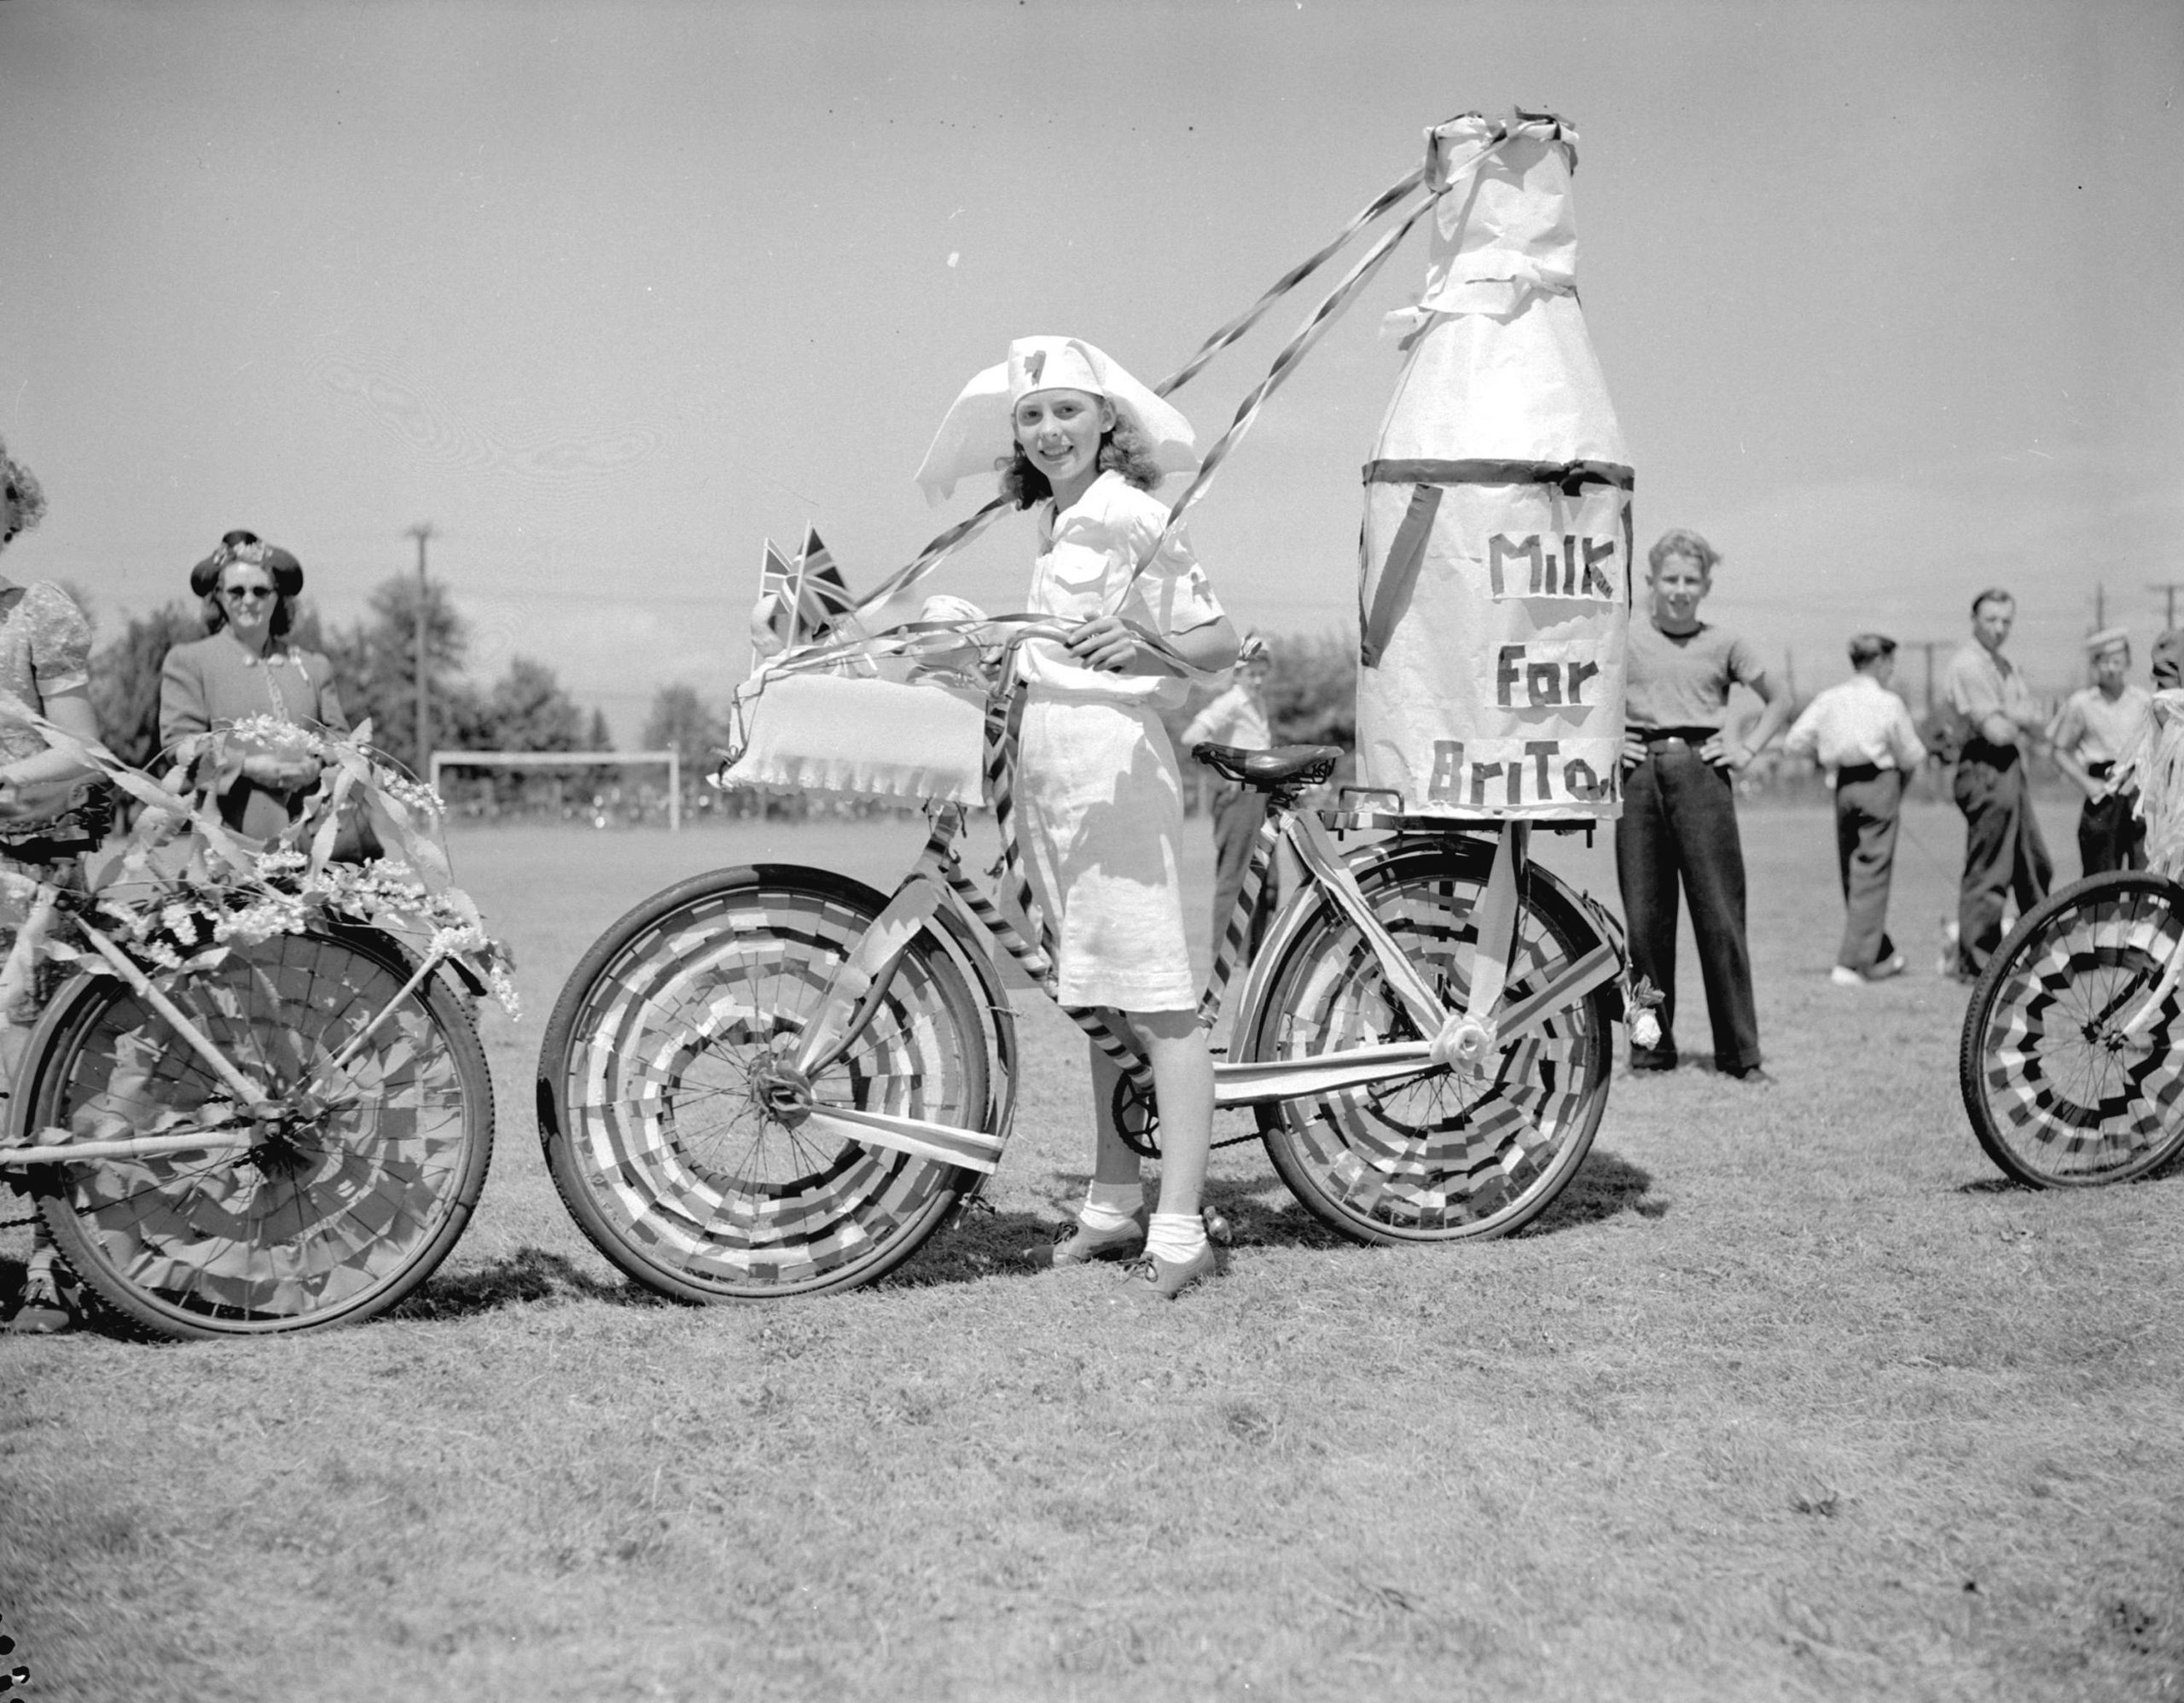 Decorated bicycle at Richmond Victory Celebration. Reference code: AM1545-S3-: CVA 586-1301